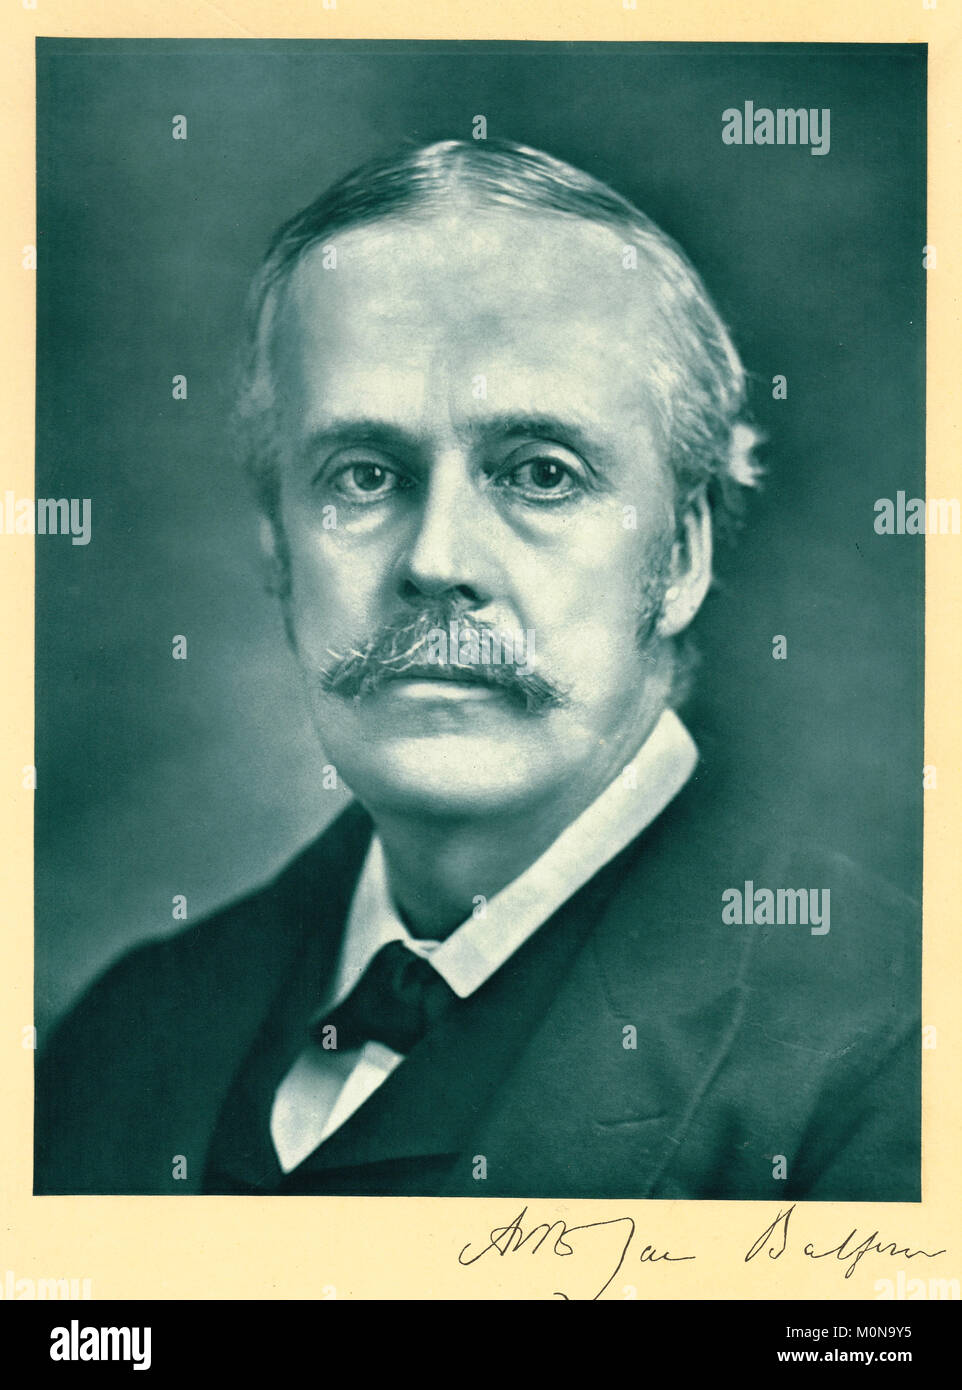 Arthur Balfour, Prime Minister of the United Kingdom from 1902 to 1905 - Stock Image